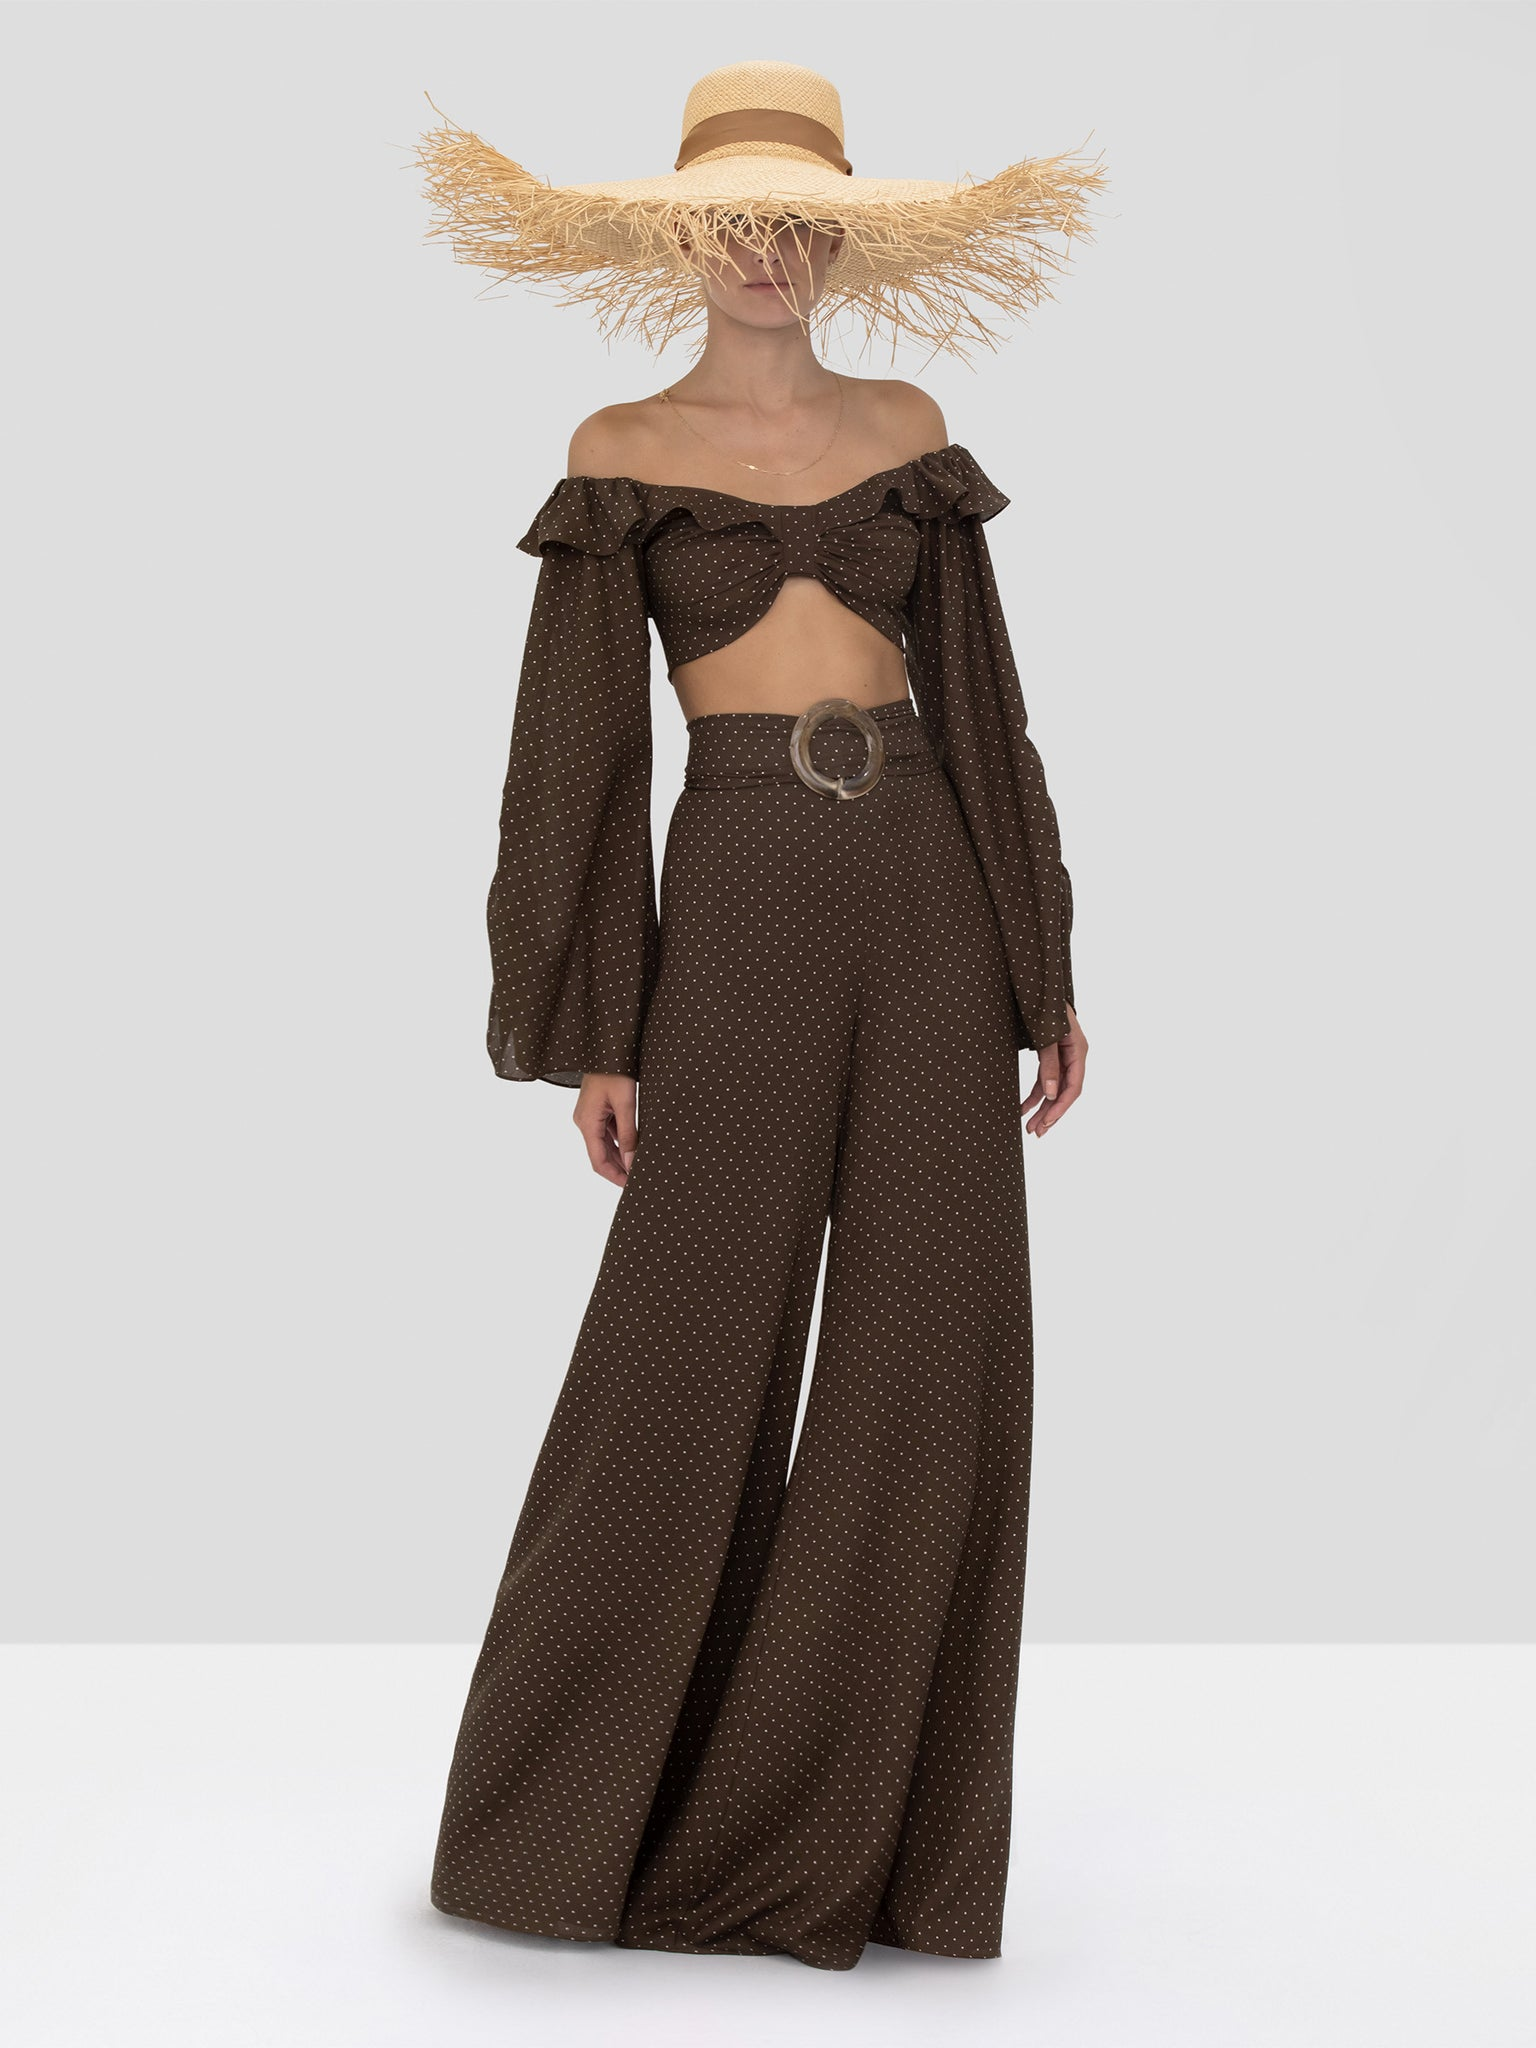 Alexis Antonin Pant and Ewa Crop Top in Mocha Dot Linen from the Spring Summer 2020 Collection